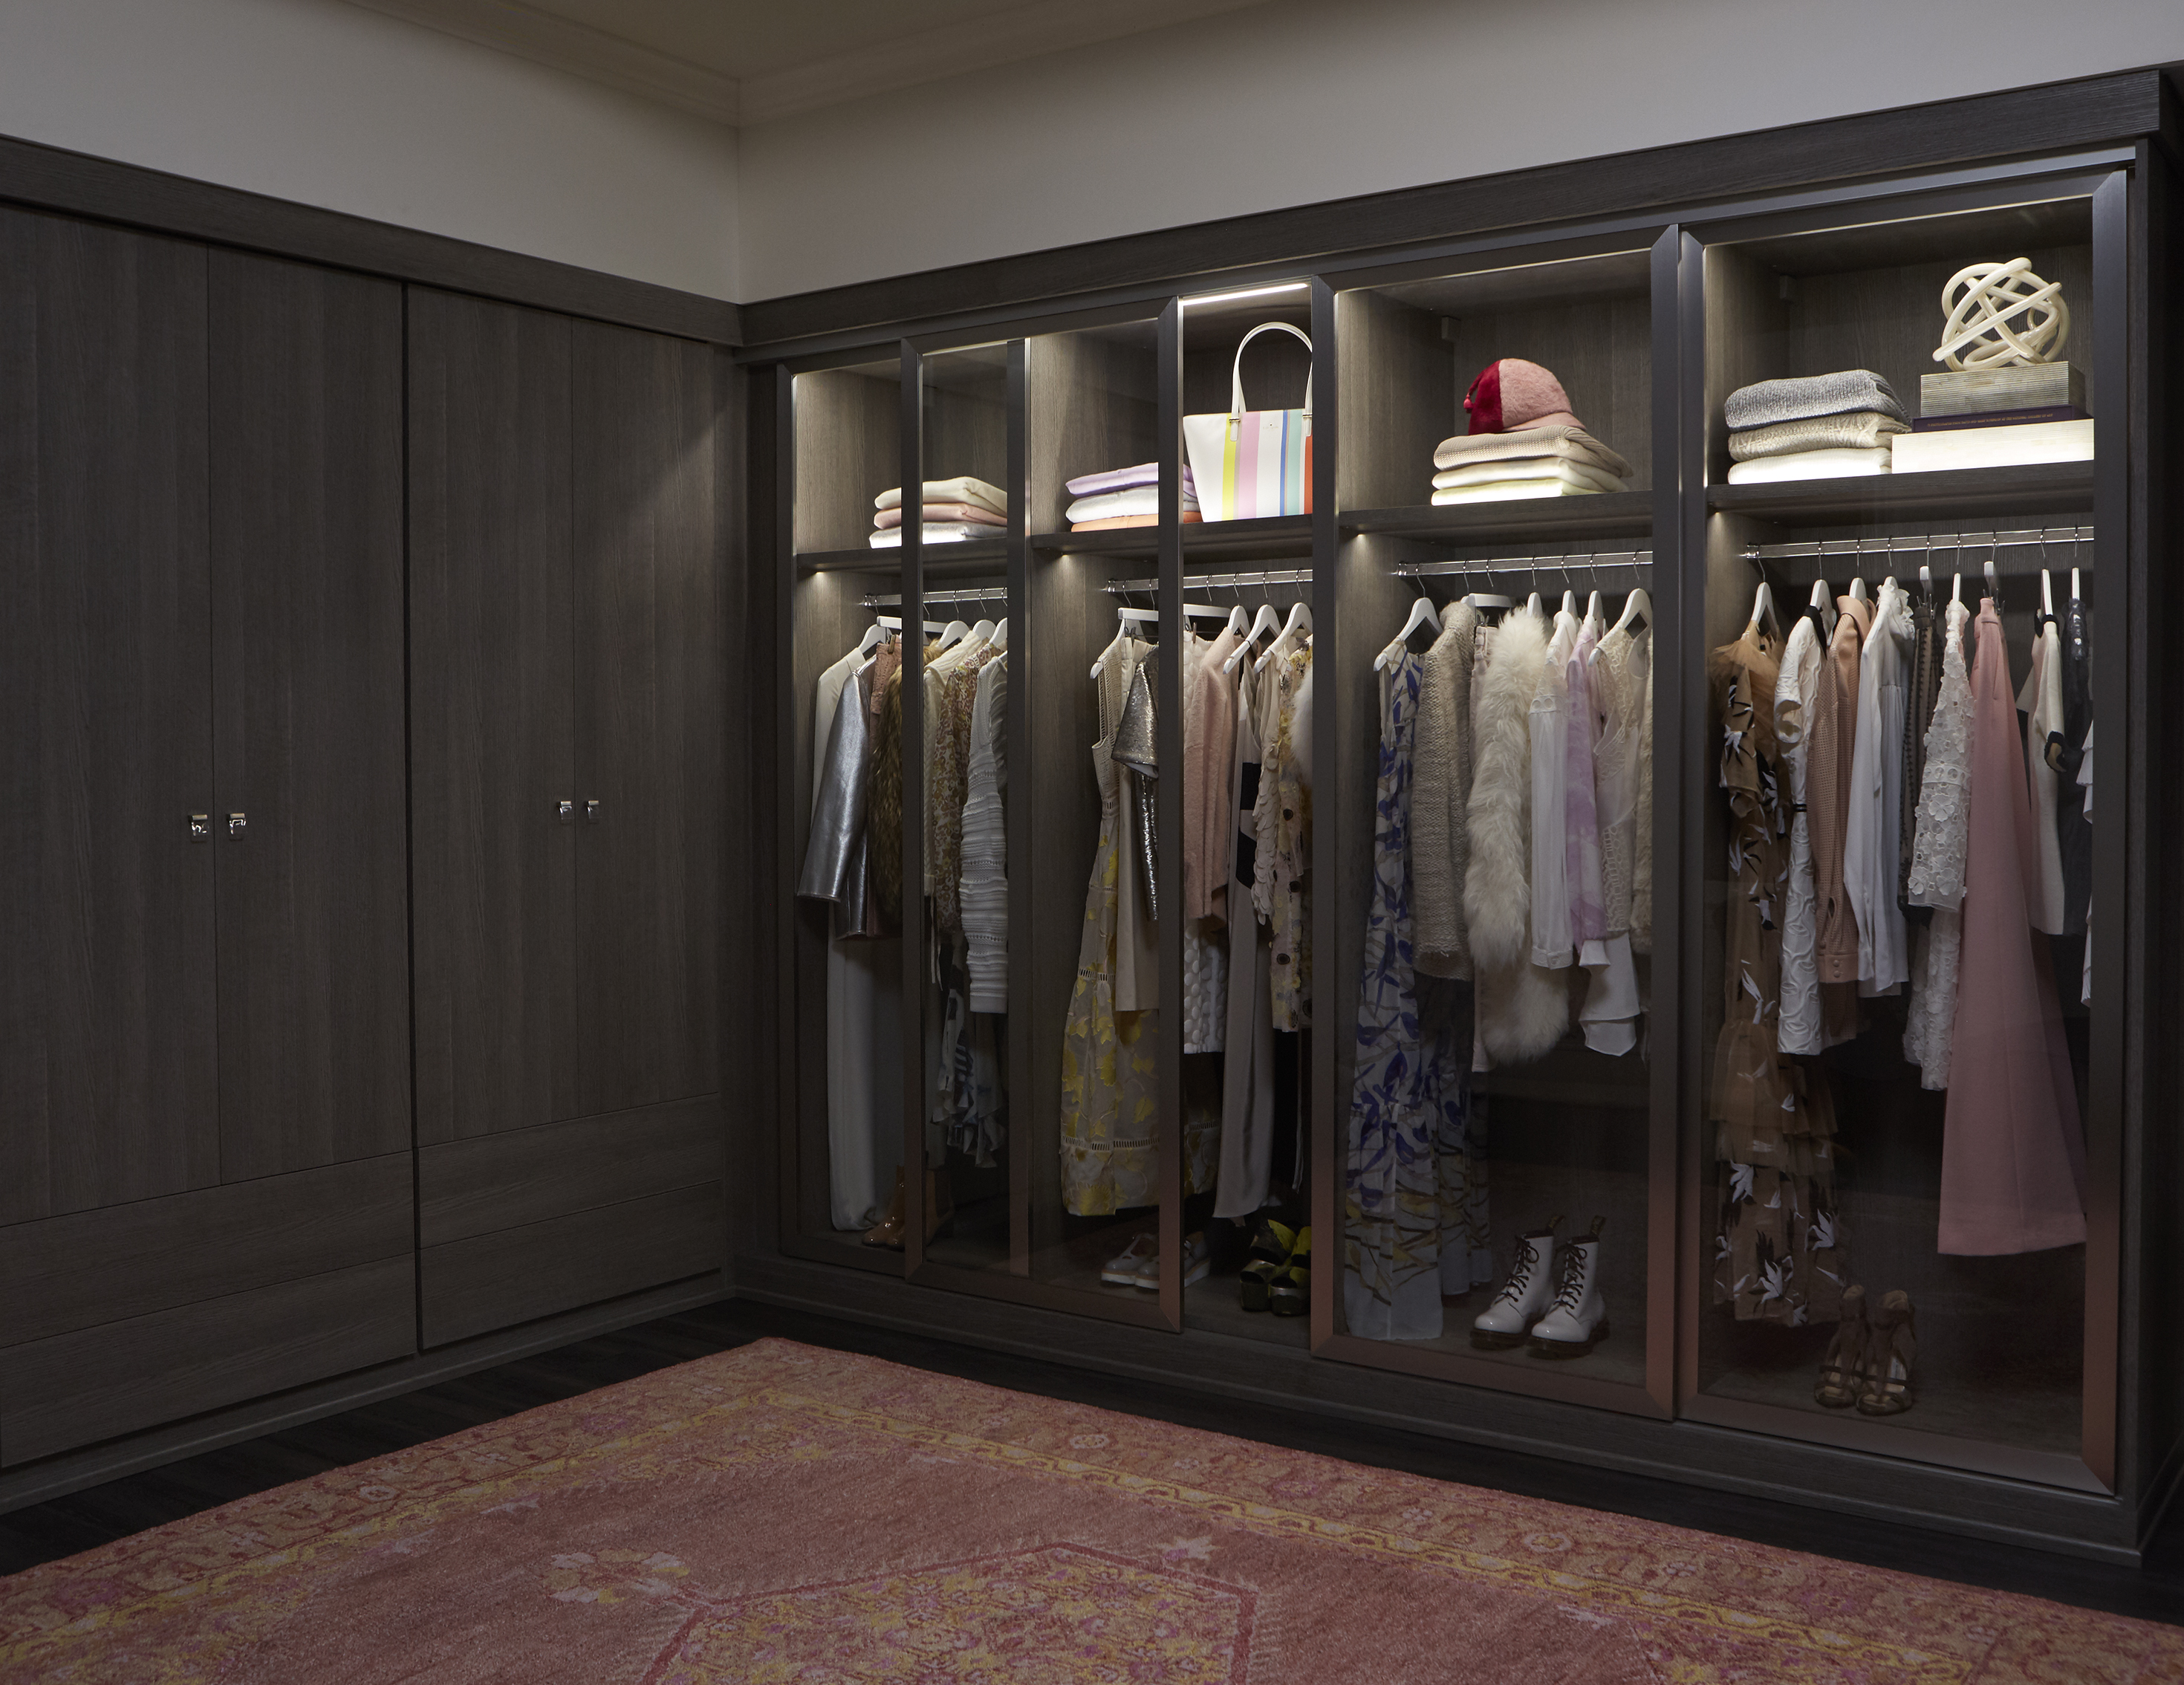 Delicieux Dark Brown Walk In Closet With Wardrobe Closet Rods Shelving And Built In  Lighting